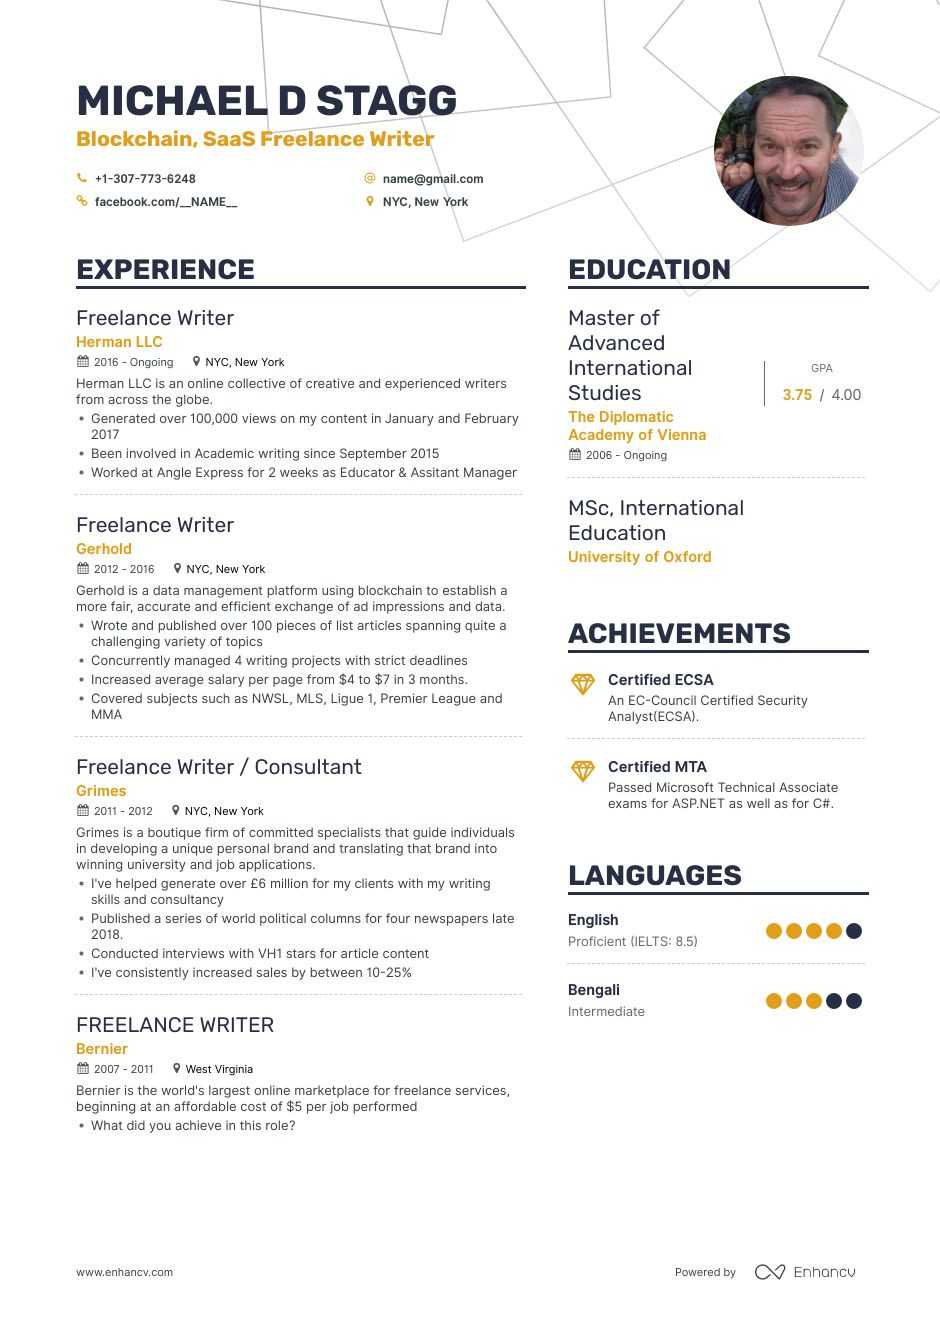 Freelance Writer Resume Examples And Skills You Need To Get Hired